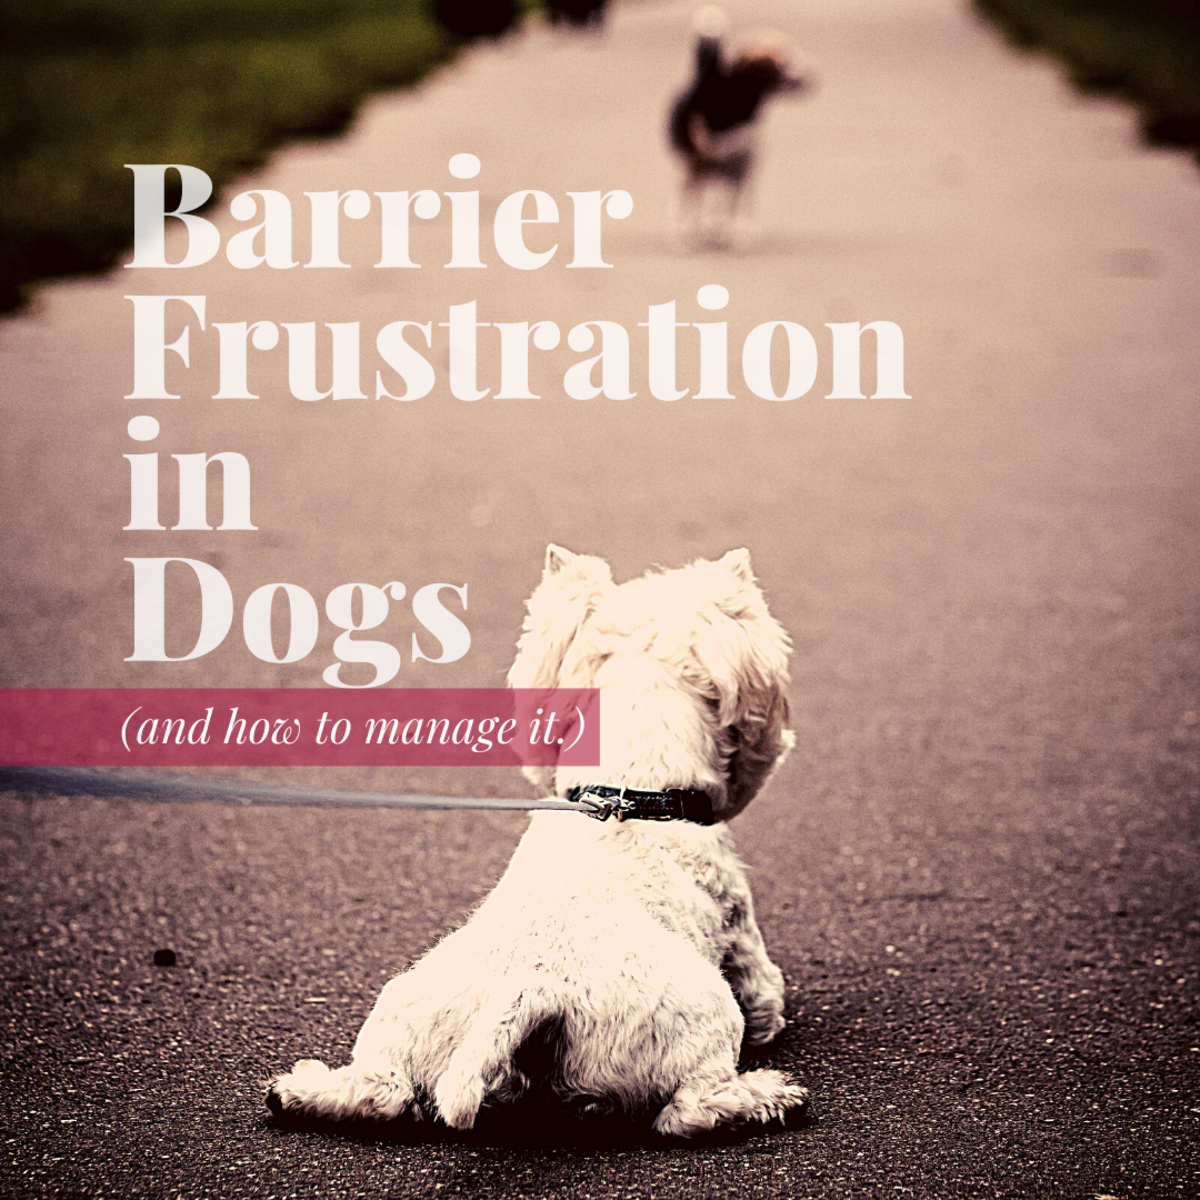 What is Barrier Frustration?